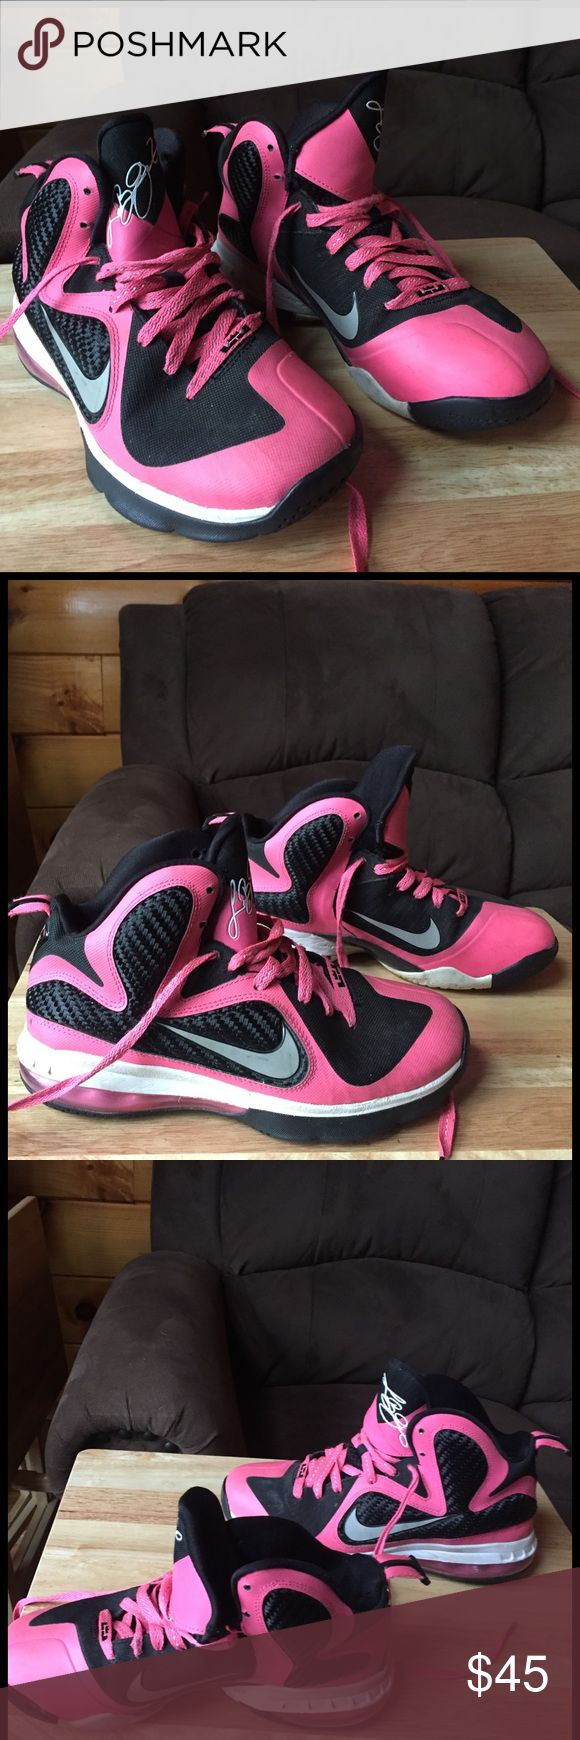 Nike Lebron James *THESE NEED TO GO!* Nike brand. Lebron James style. Pink, black, white in color. Condition is pre-owned with the usual defects as pictured. I wore them for a season of high school basketball. Size 6Y which I believe is equivalent to a women's 8! Reasonable offers accepted. Nike Shoes Sneakers